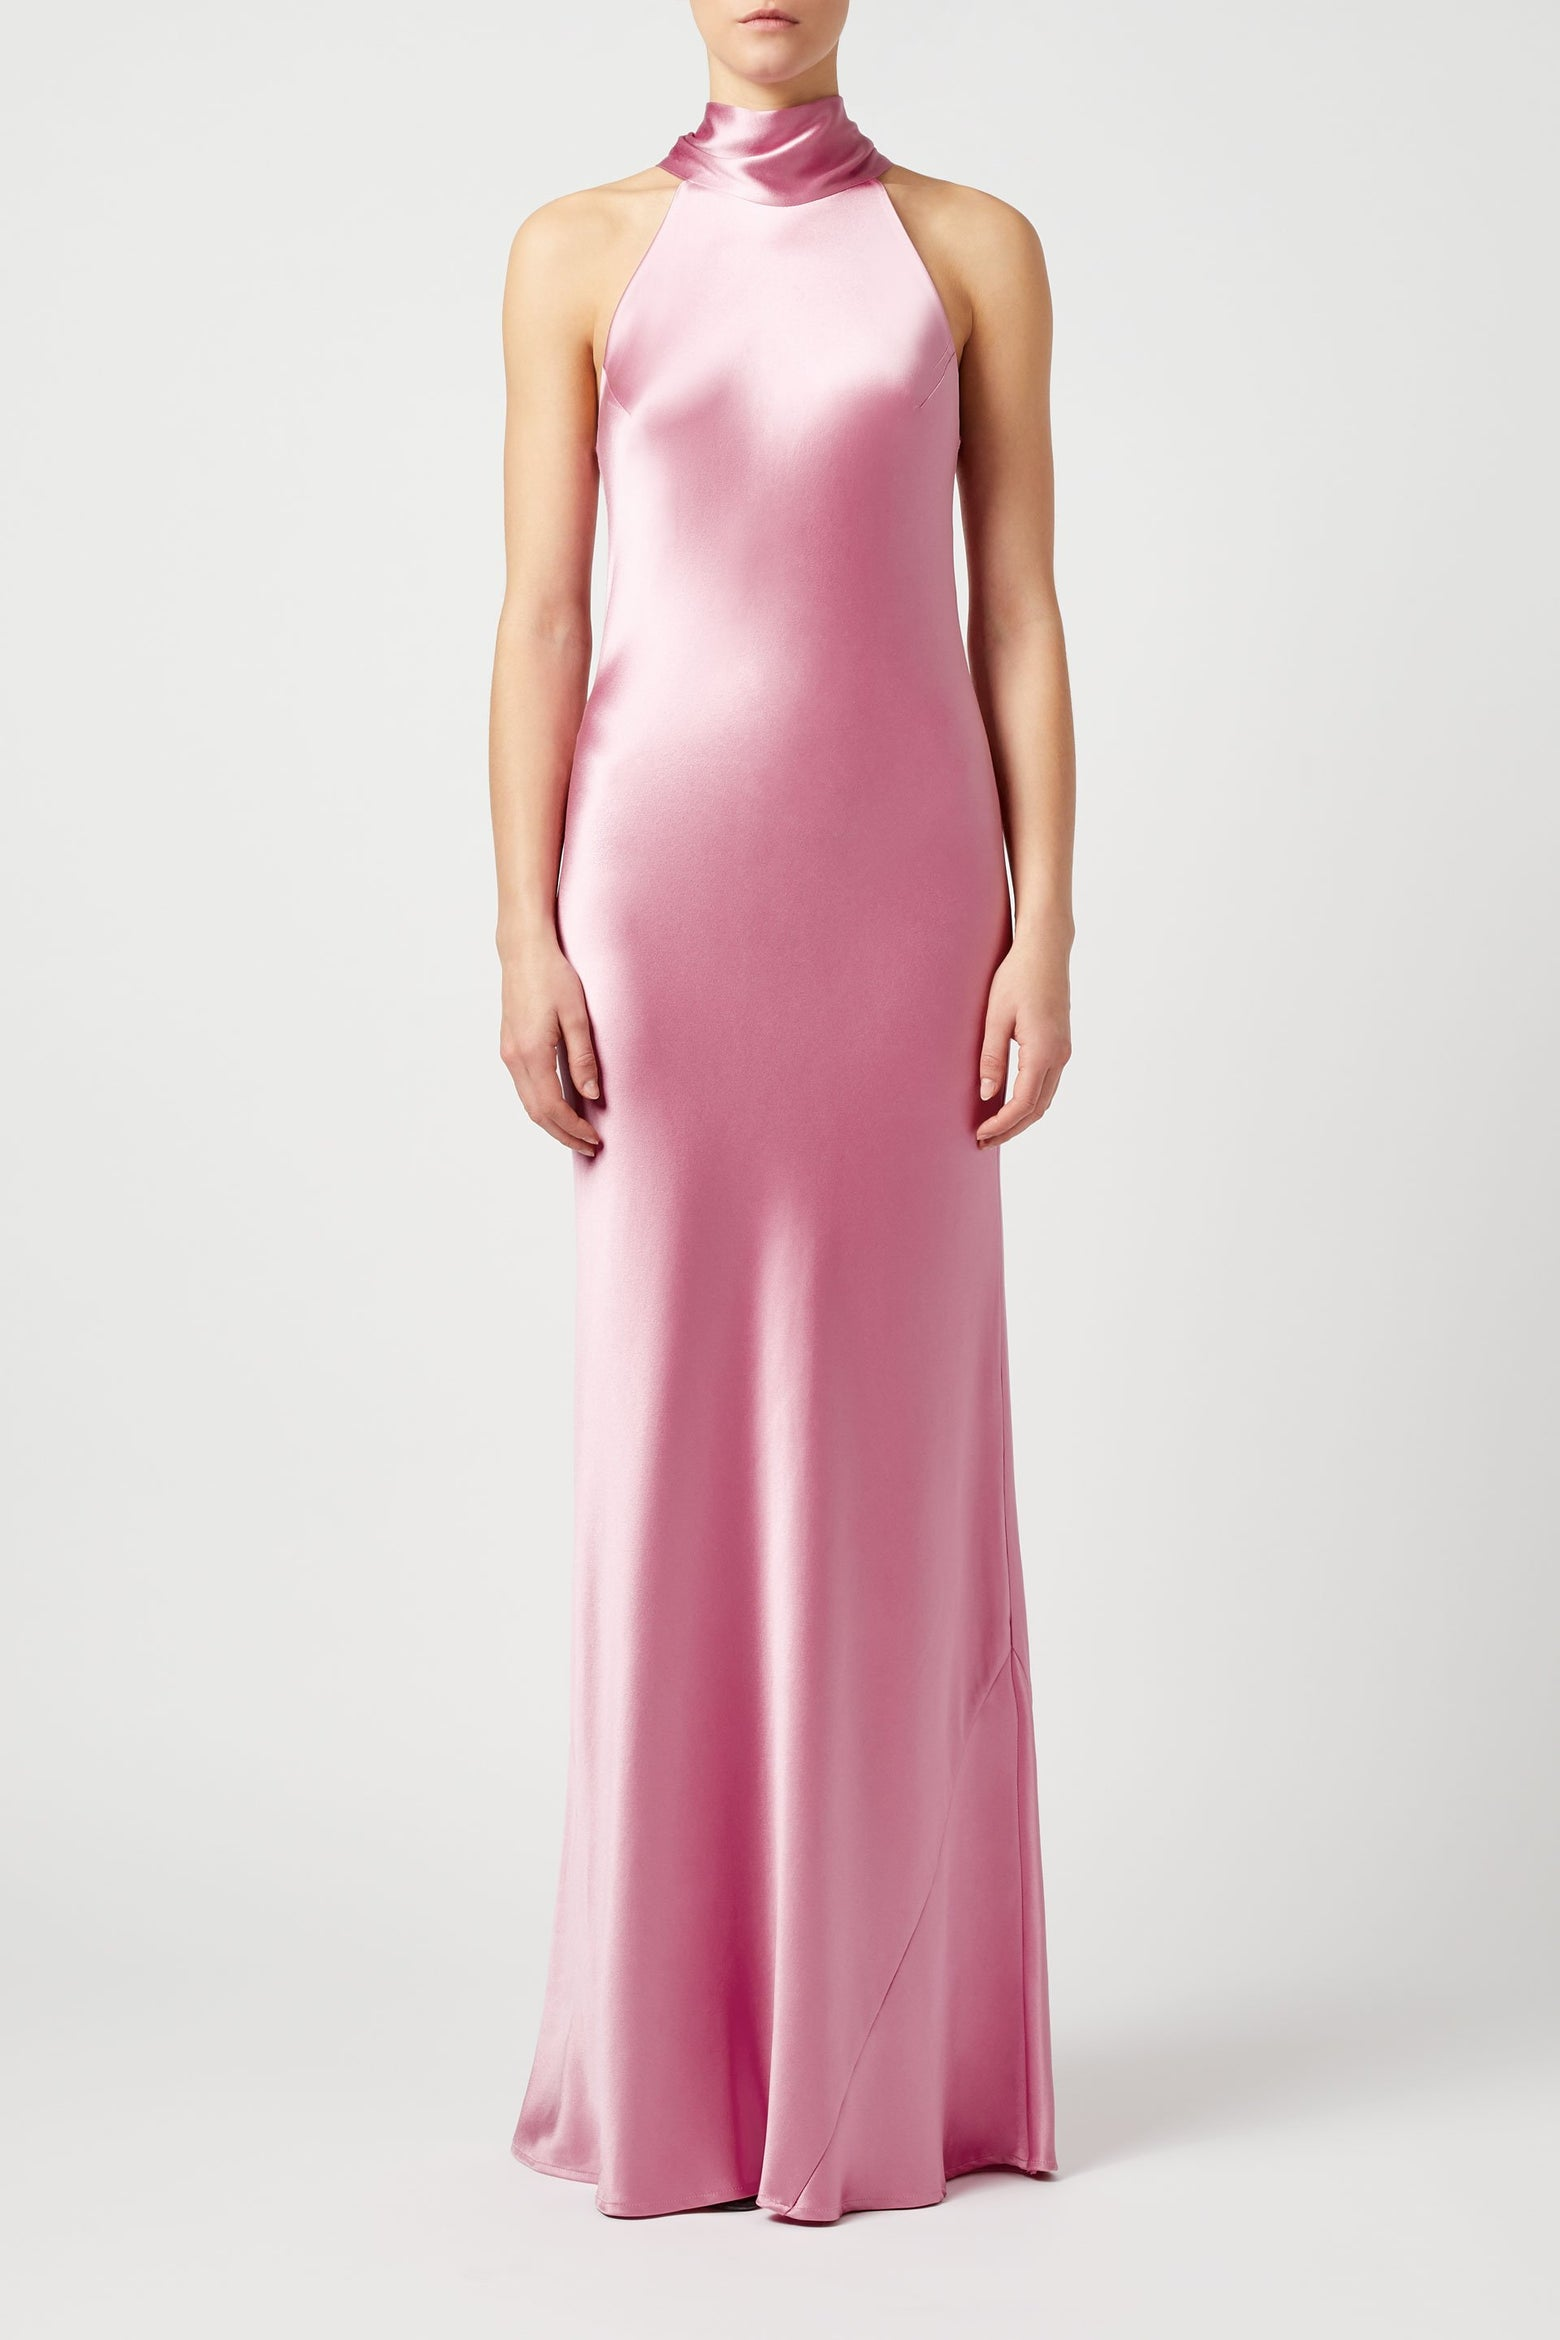 Sienna Dress - Rose